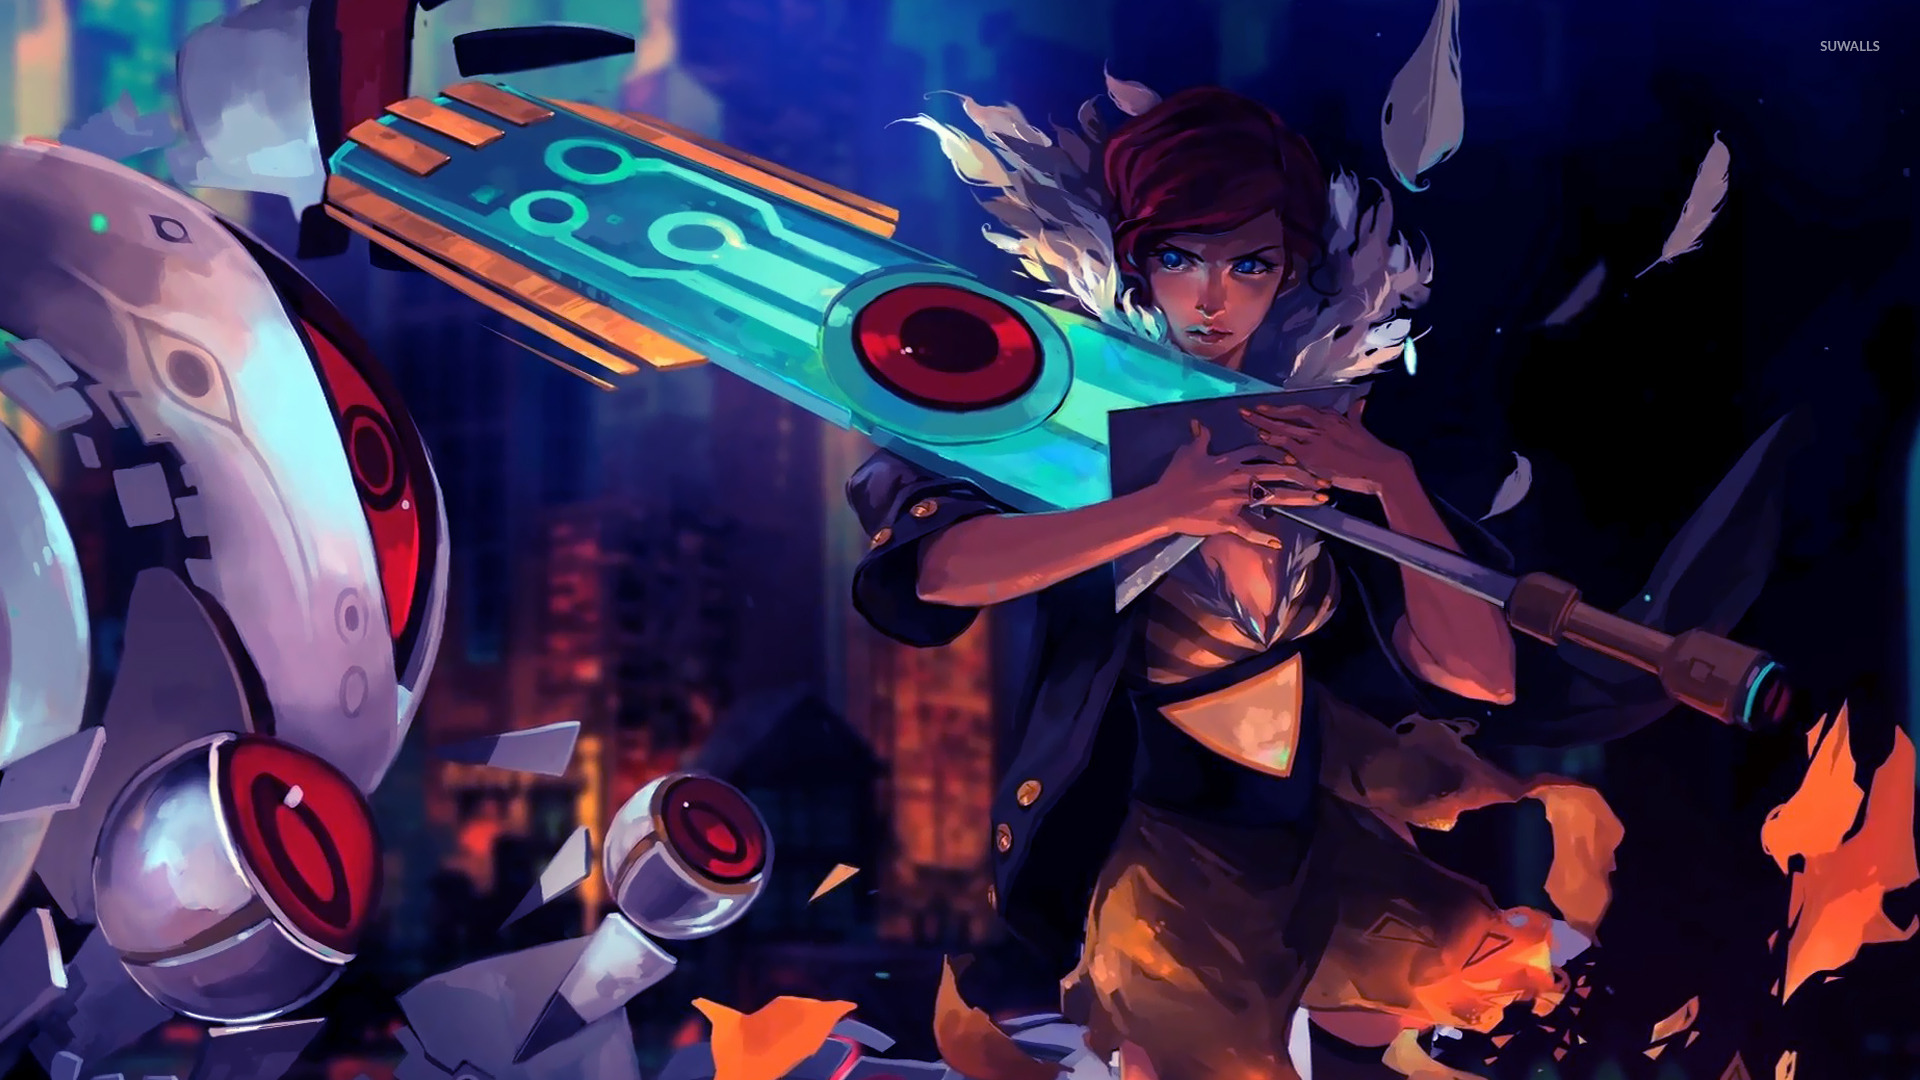 transistor 2 wallpaper game wallpapers 21714